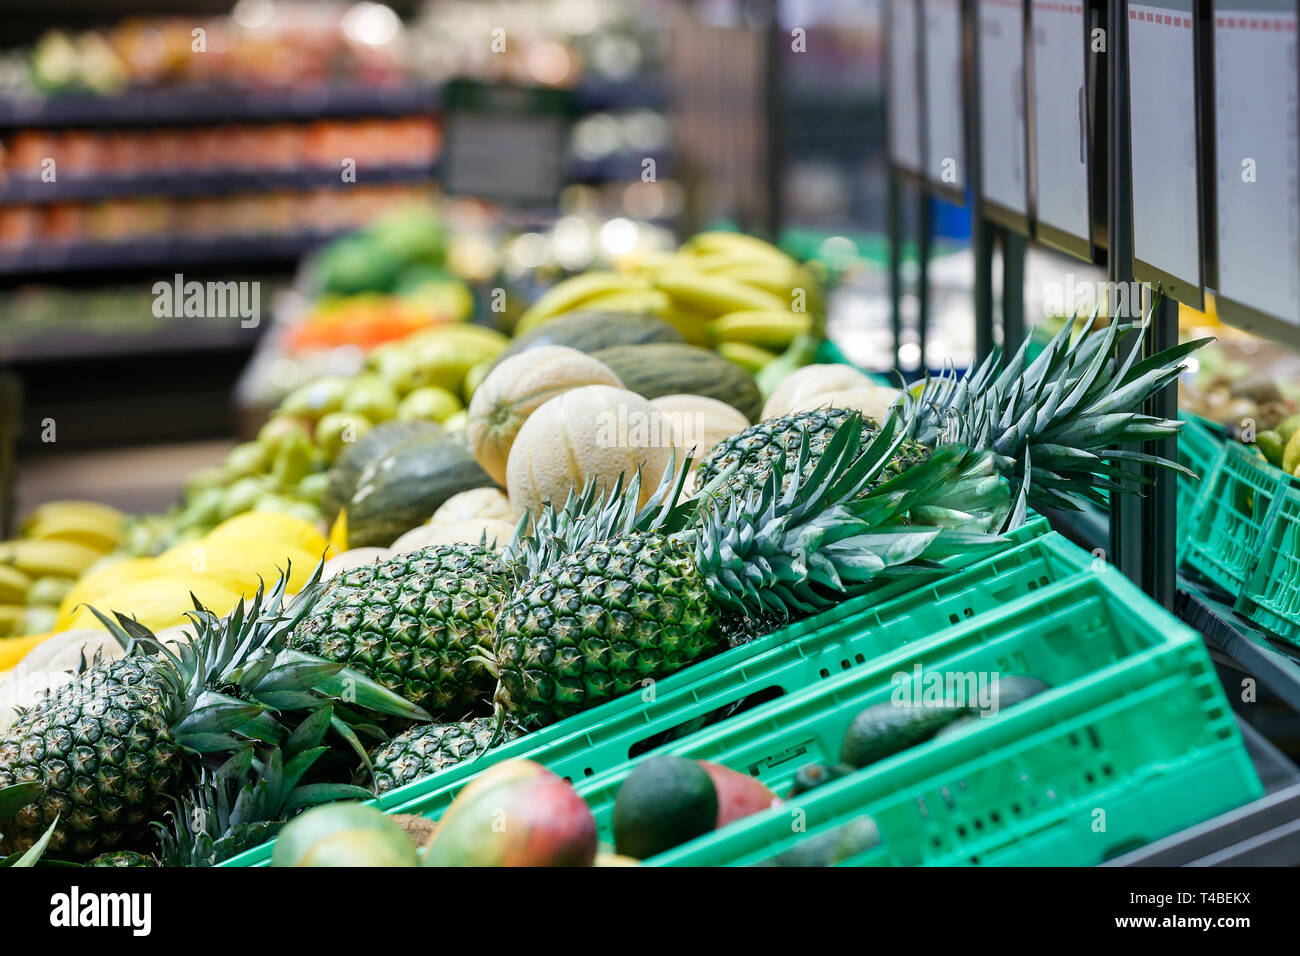 Unpacked, fresh exotic fruits in a self-service supermarket. Zero-waste movement and philosophy, sustainable trade and organic grocery concept. - Stock Image